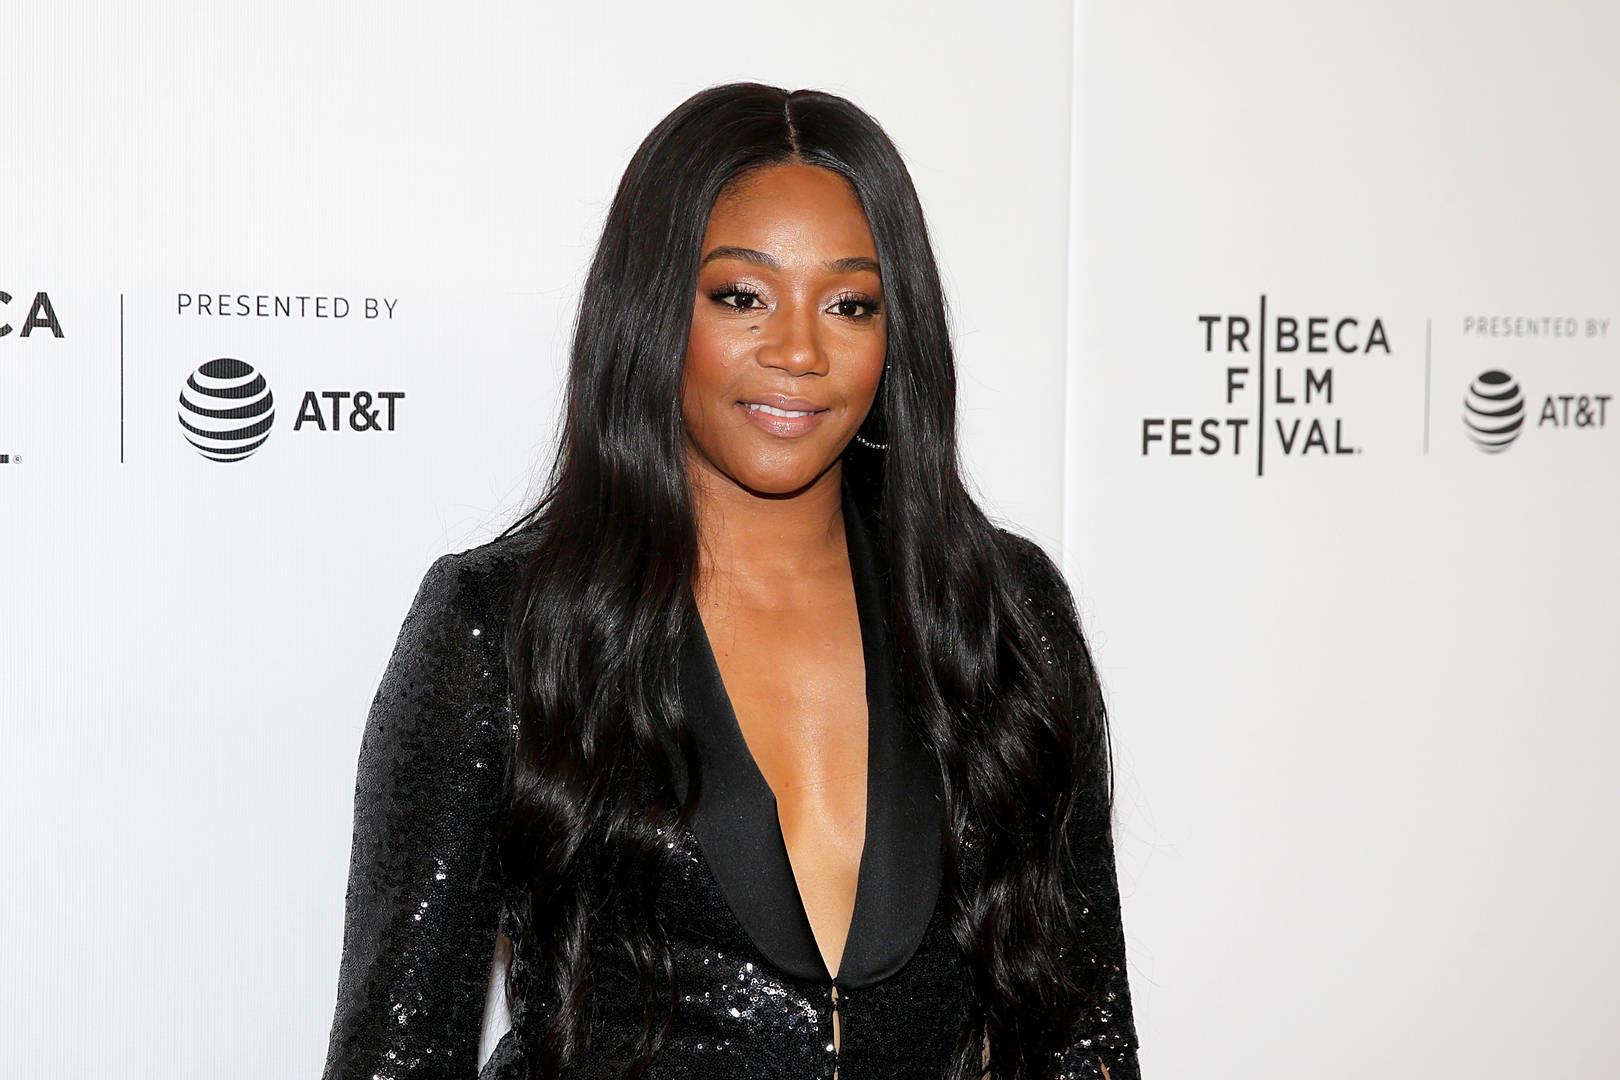 Tiffany Haddish Secretly Records Casting Directors When She Leaves The Room